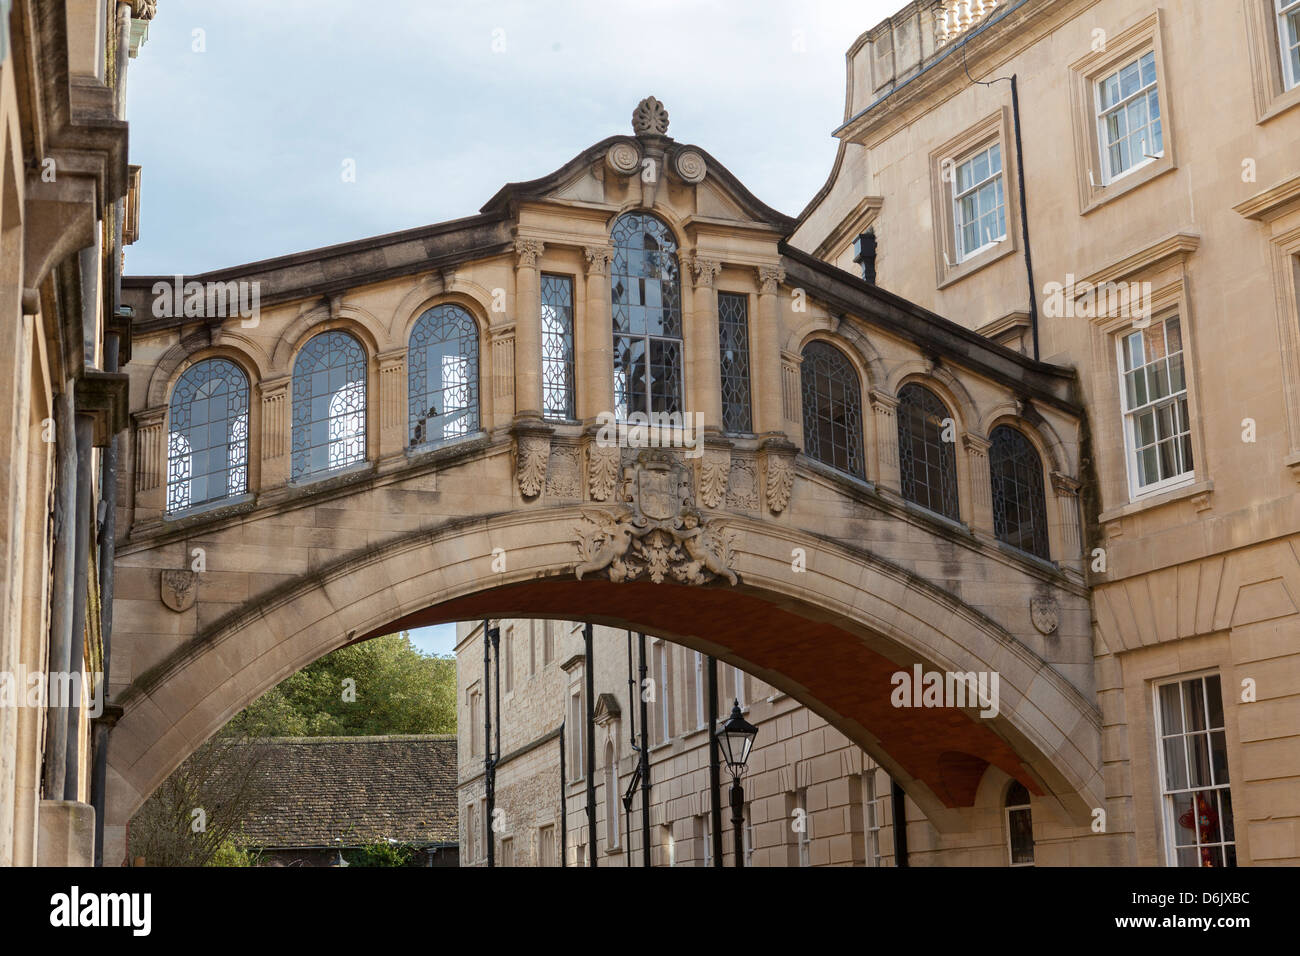 Hertford Bridge (The Bridge of Sighs), joining Hertford College and New College Lane, Oxford, Oxfordshire, England, - Stock Image